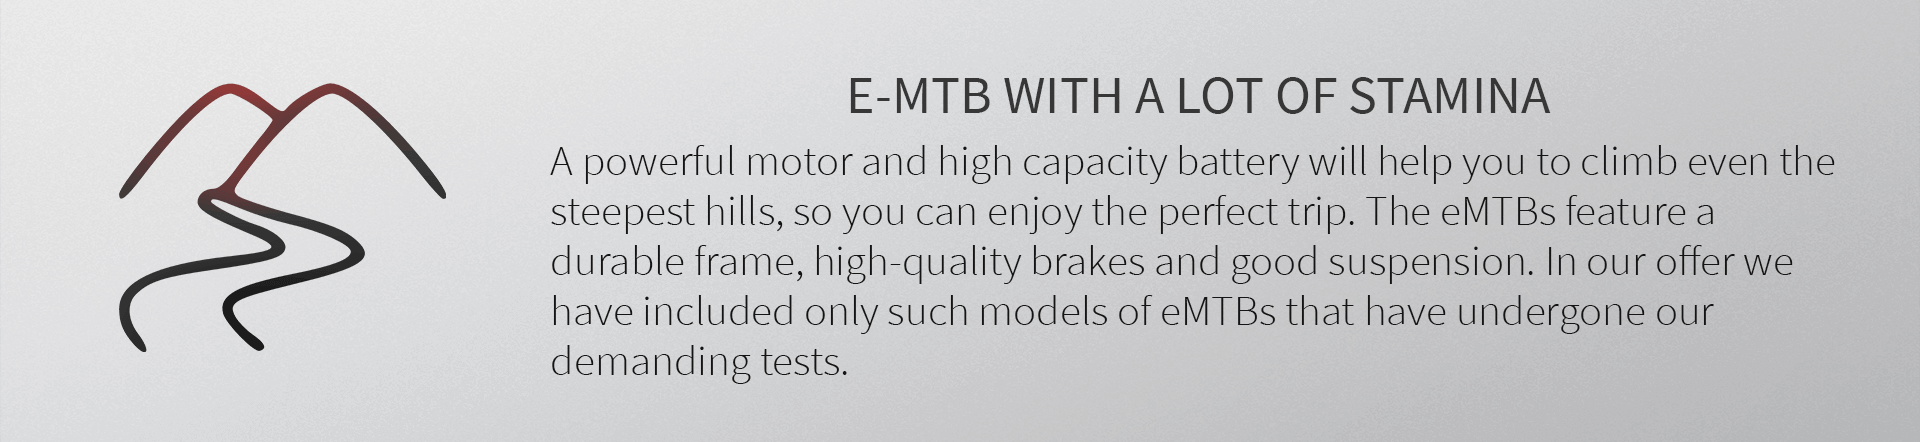 E-MTB WITH A LOT OF STAMINA. A powerful motor and high capacity battery will help you to climb even the steepest hills, so you can enjoy the perfect trip. The eMTBs feature a durable frame, high-quality brakes and good suspension. In our offer we have included only such models of eMTBs that have undergone our demanding tests.